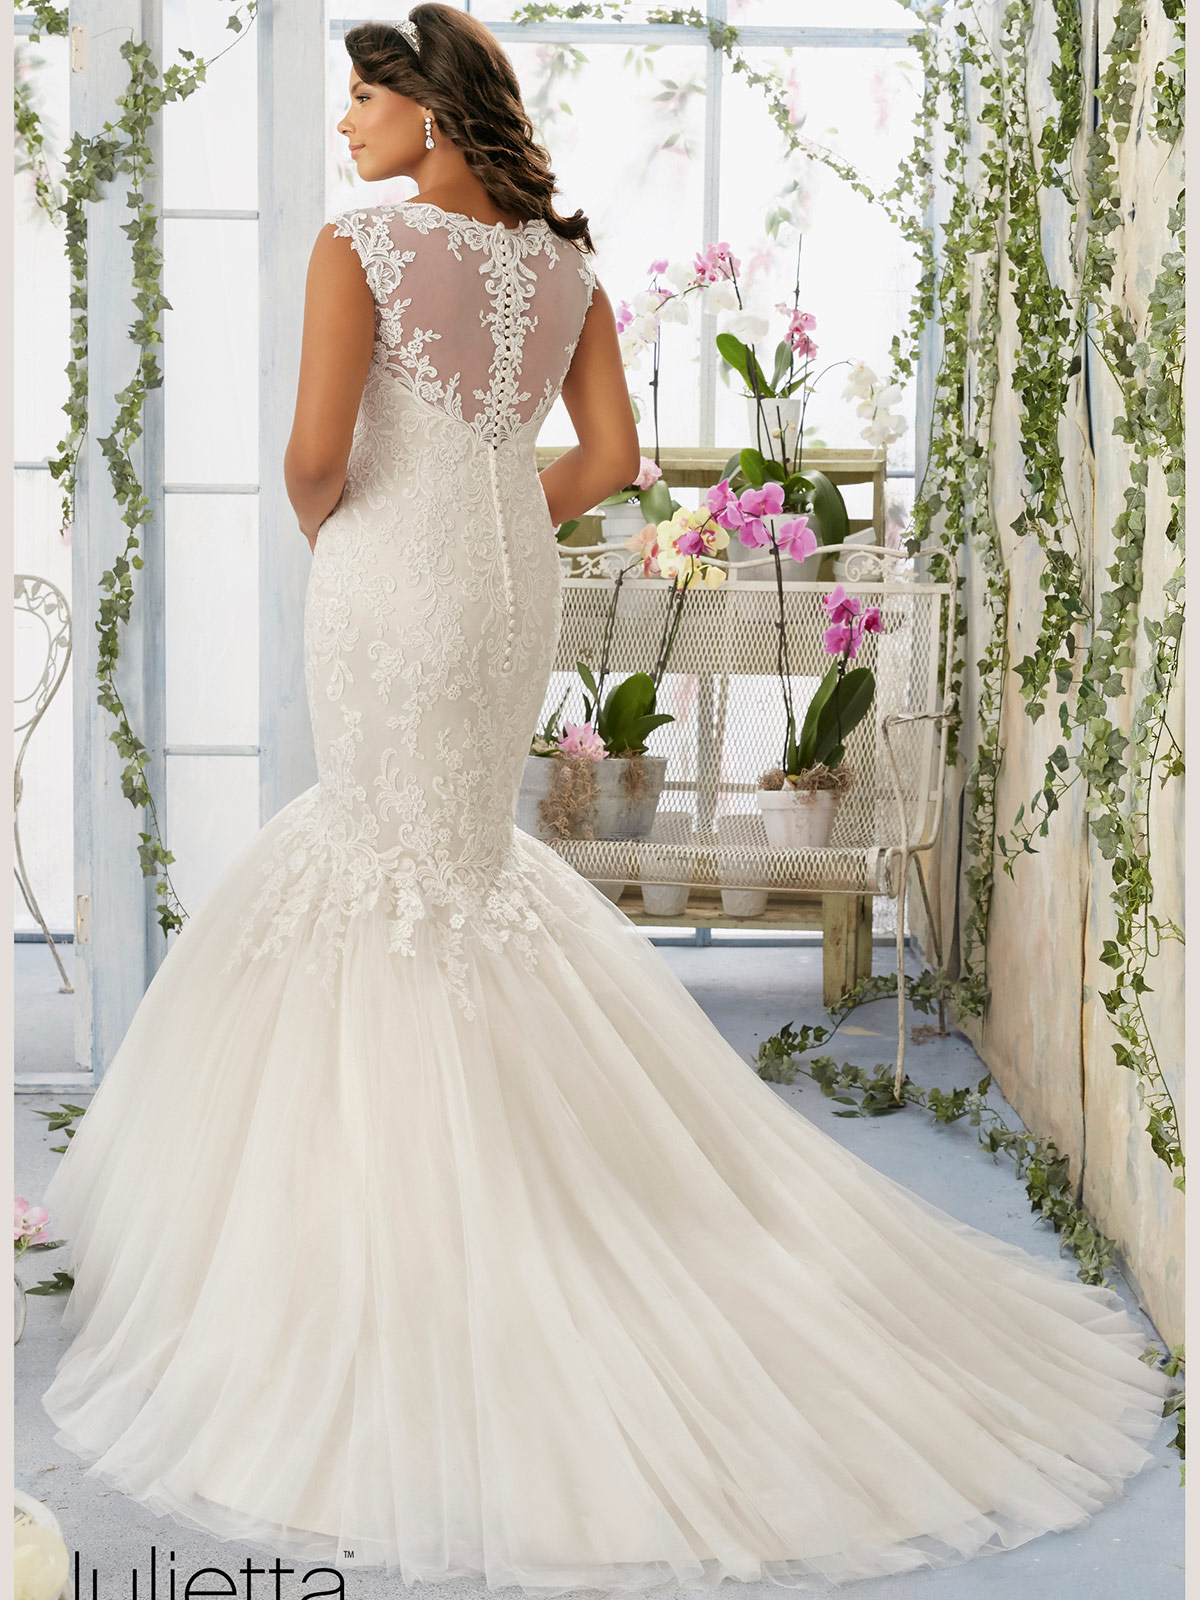 Mori Lee Julietta 3192 Cap Sleeves Tulle Mermaid Bridal